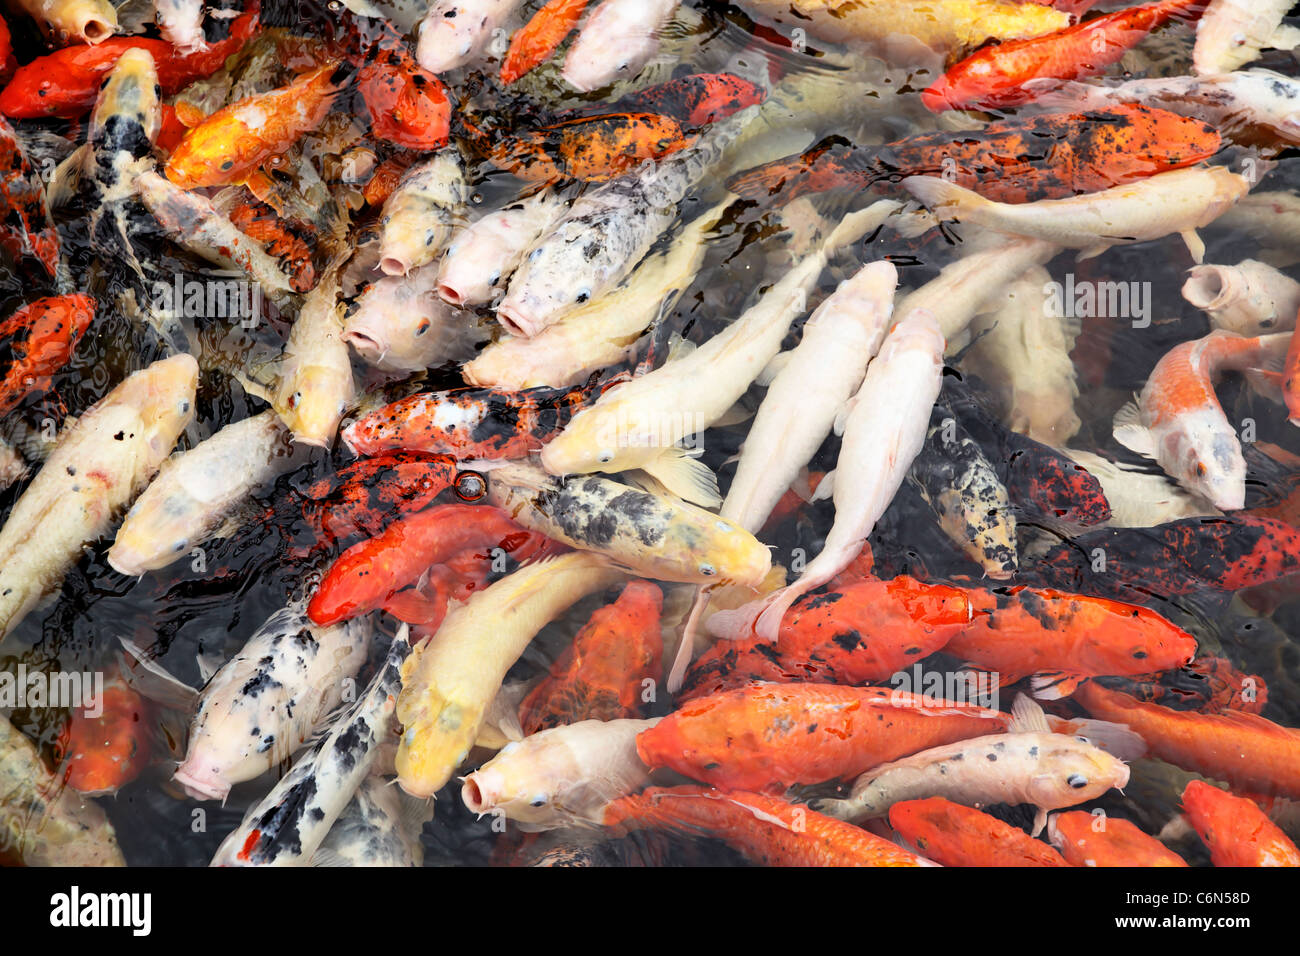 Different Coloured Fish Stock Photos & Different Coloured Fish Stock ...